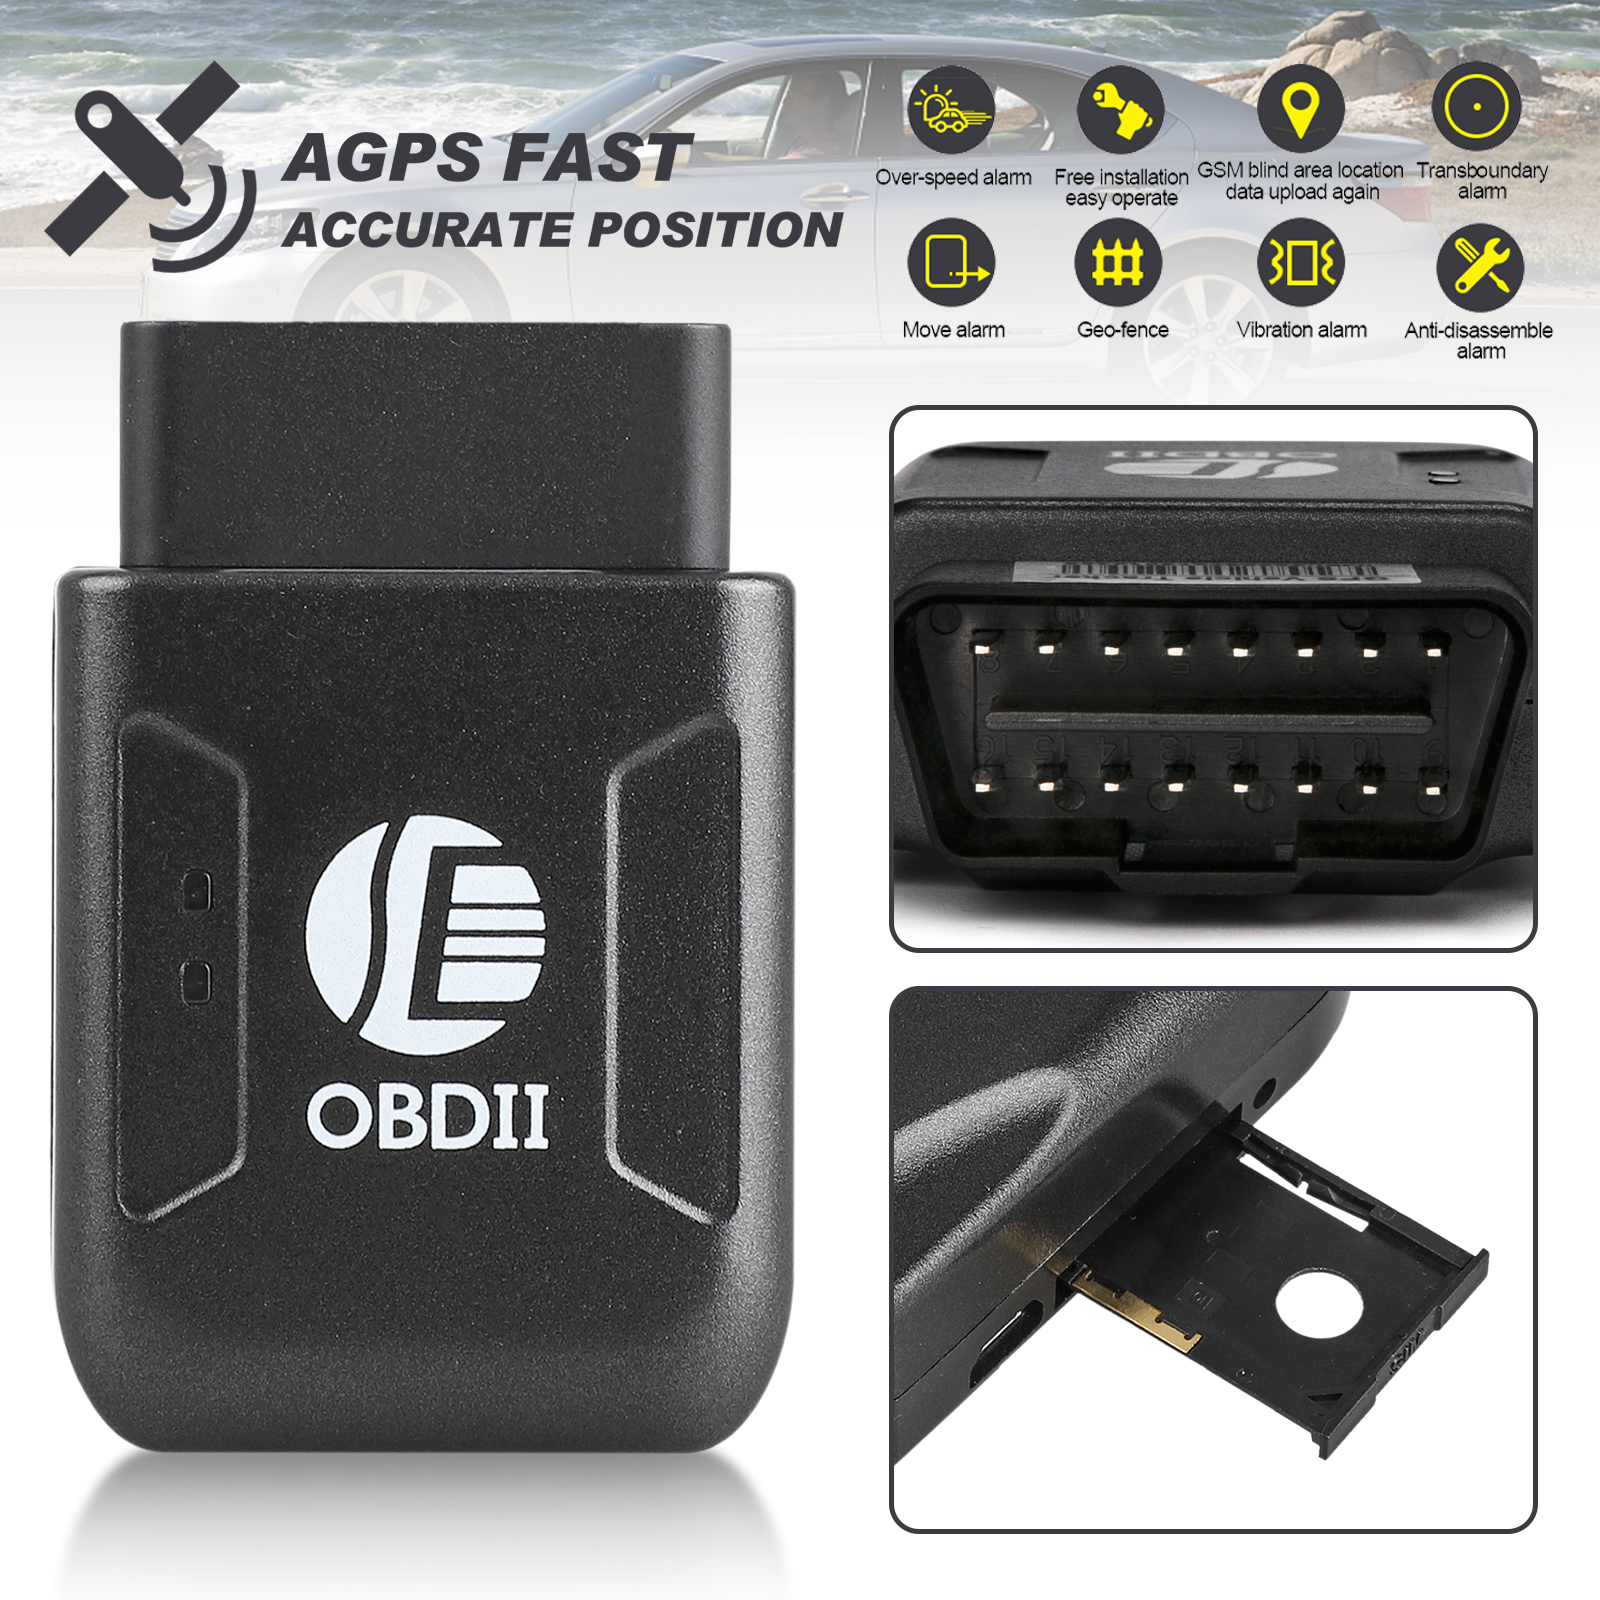 EEEkit Mini Portable Real Time Personal and Vehicle GPS Tracker for Tracking Assets, Equipment, and Vehicles